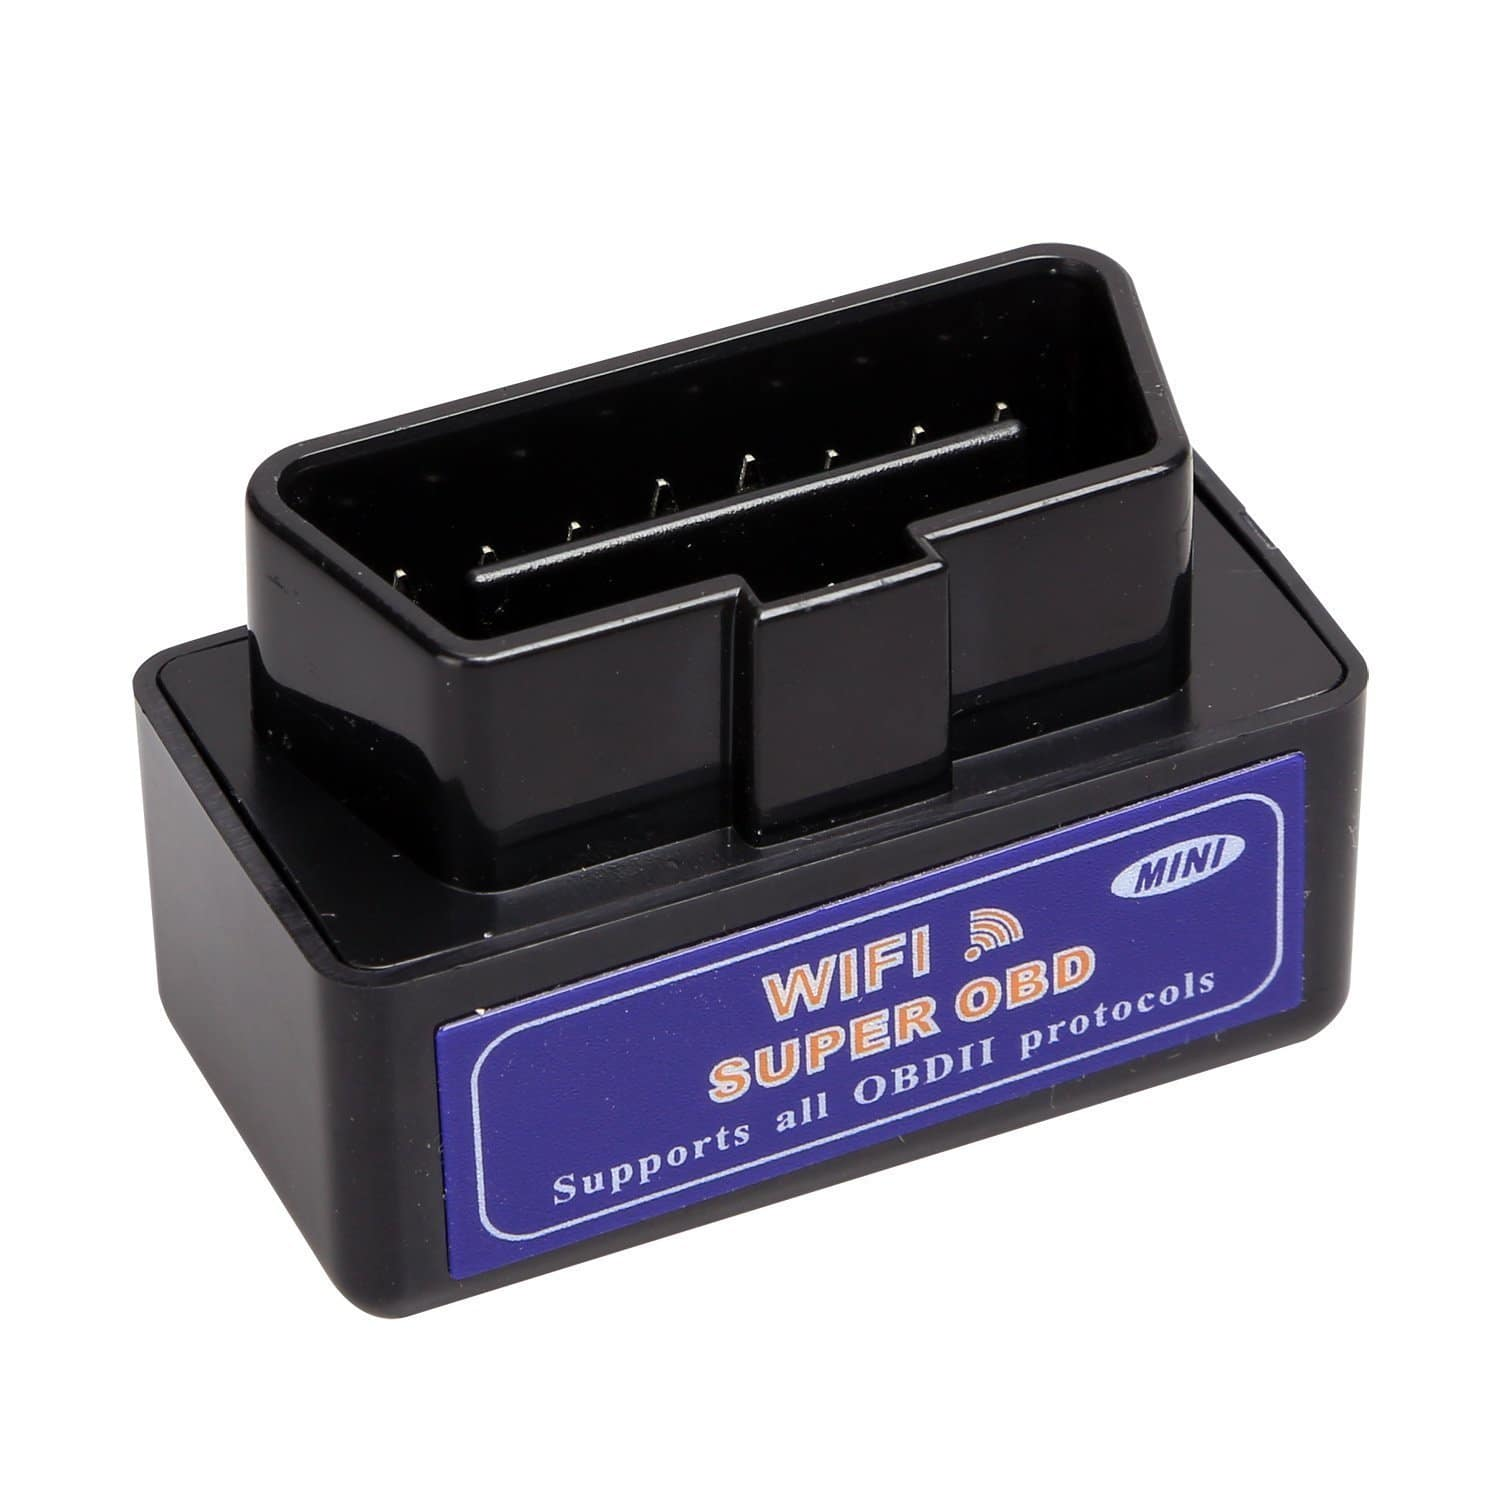 OBD2 WiFi Adapter Car OBD OBD II Engine Scanner Auto Diagnostic Tool Read Error Code for iOS & Android Devices $14 - Amazon